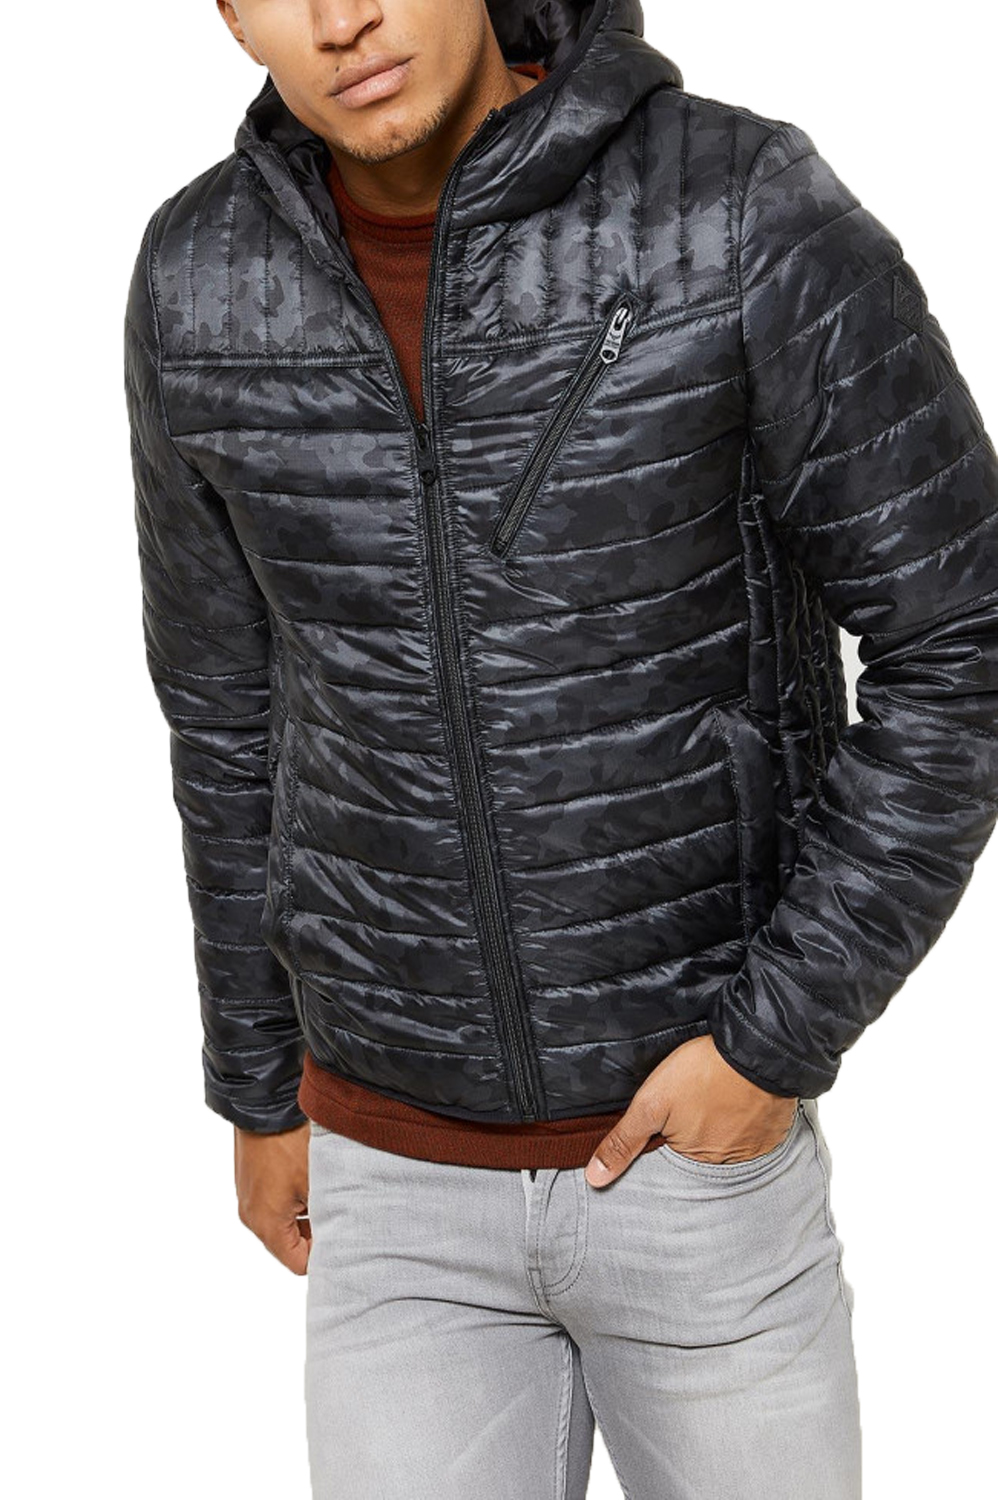 Men's Quilted Jackets Typically British, the quilted jacket is a utilitarian addition to the dapper chap's wardrobe. Warm and practical, they come in classic, biker and slim cuts.